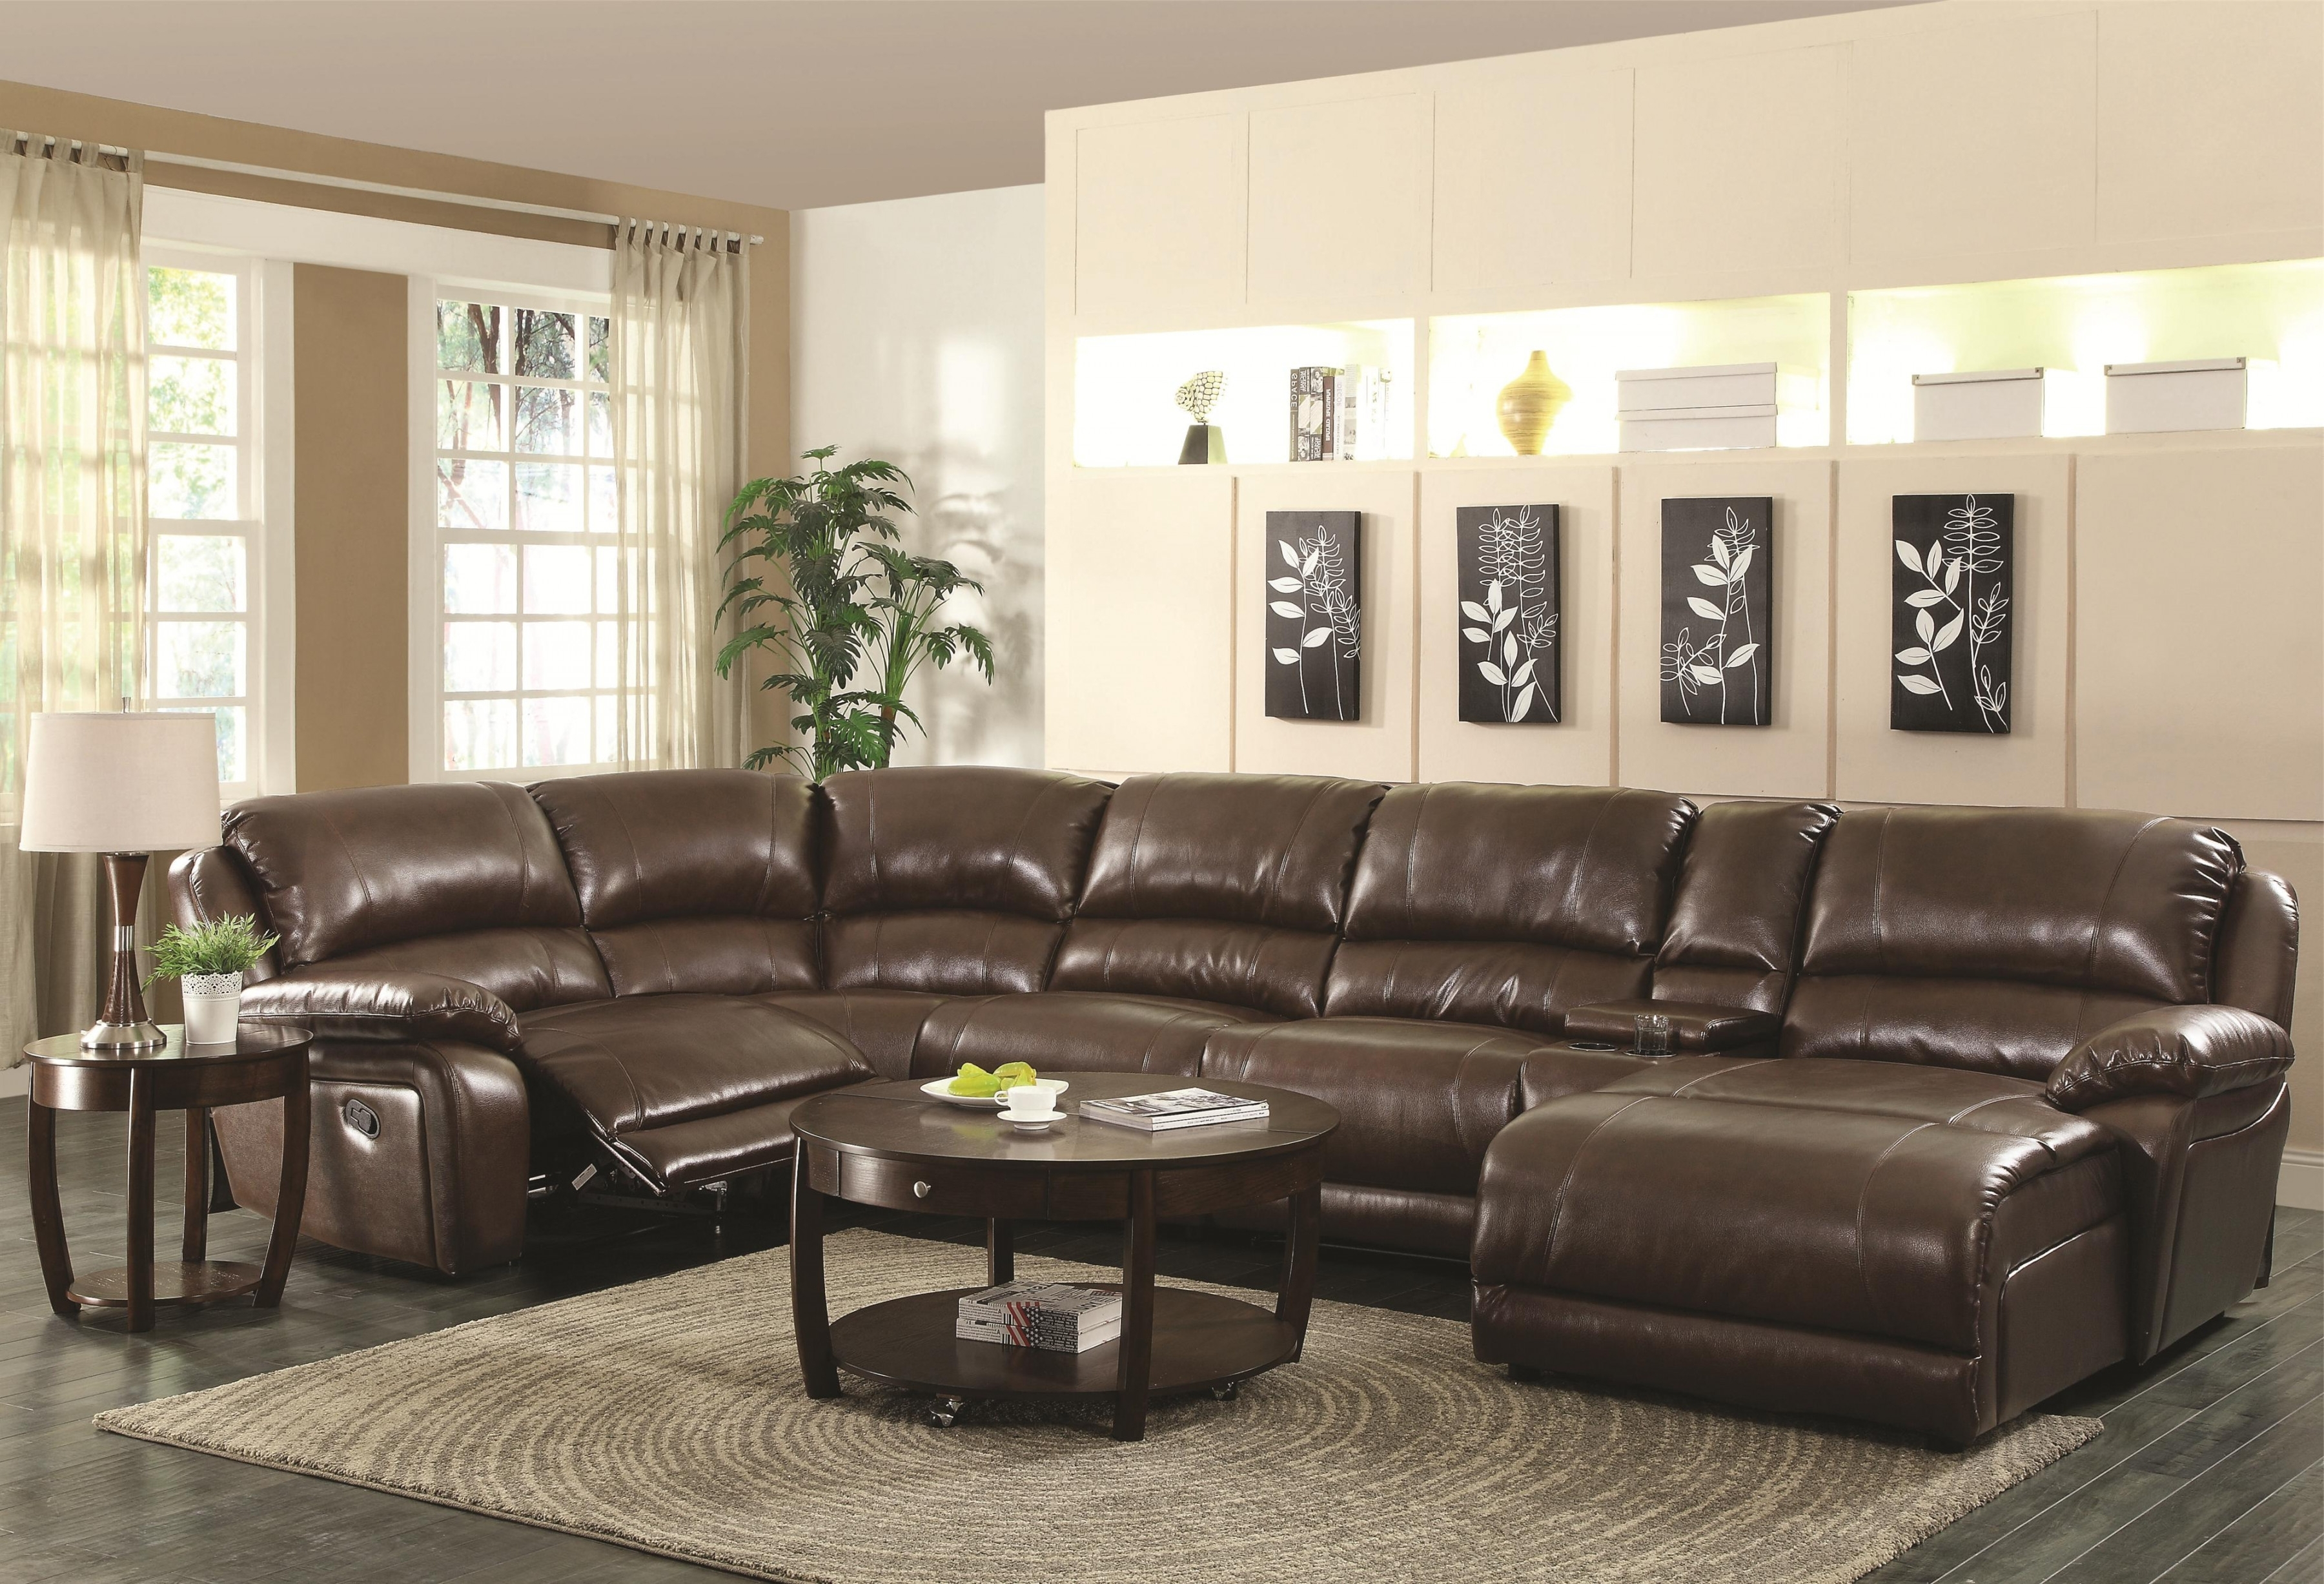 Home : Elegant Sectional Sofas With Recliners And Chaise Home Inside Newest Elegant Sectional Sofas (View 10 of 20)